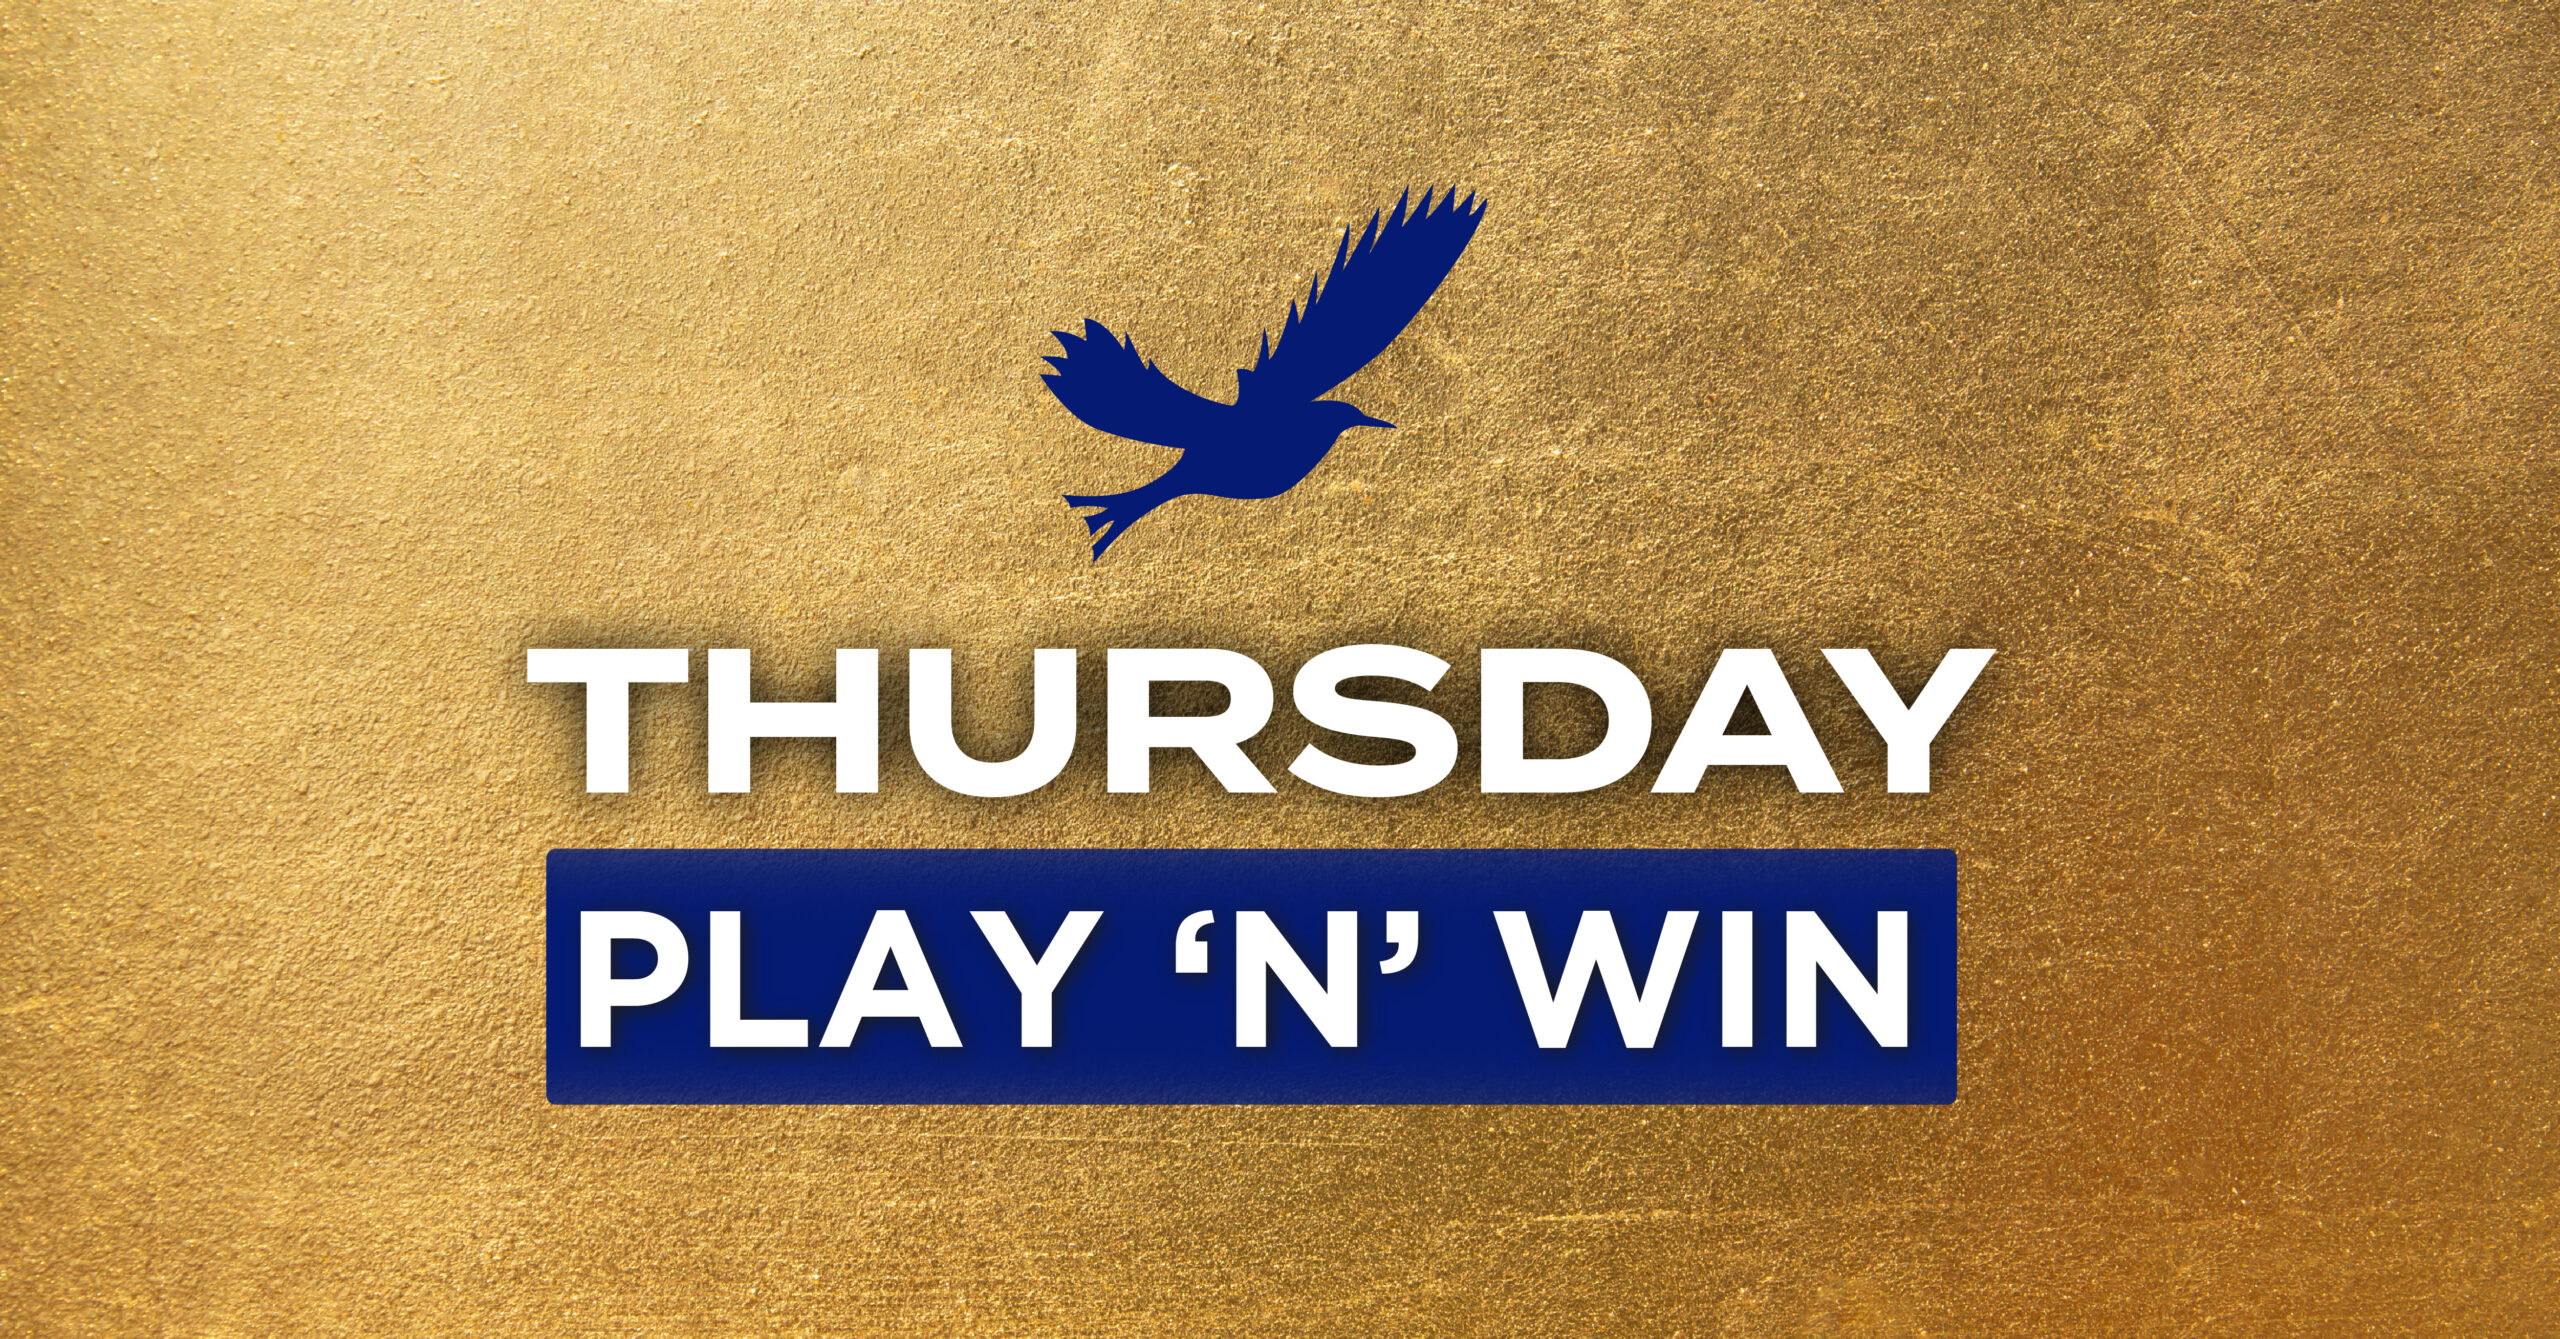 THURSDAY PLAY 'N' WIN